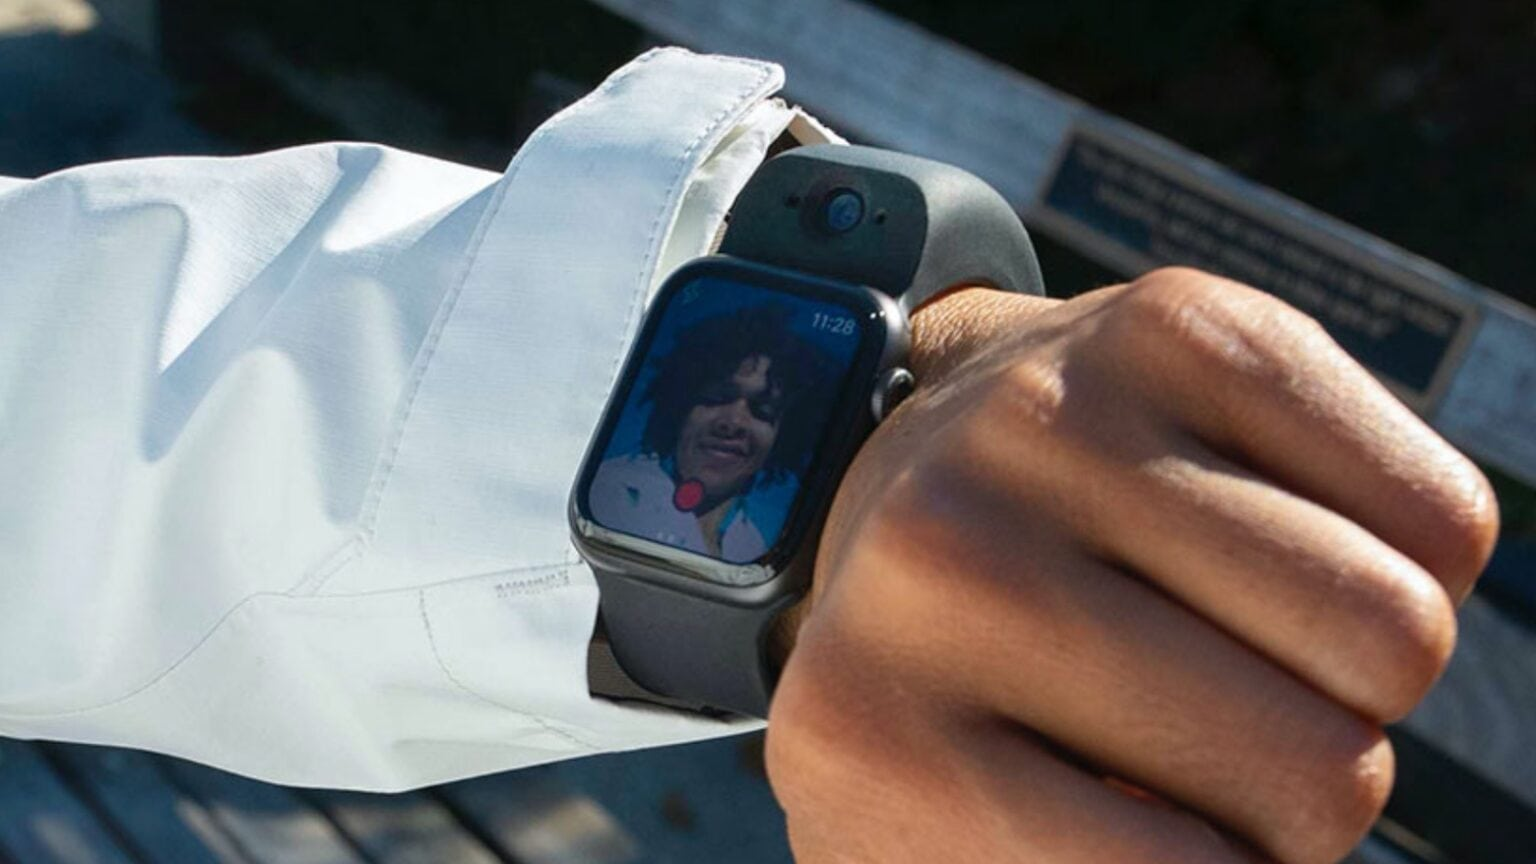 Many people would like an Apple Watch camera, but not one as large as the Wristcam.